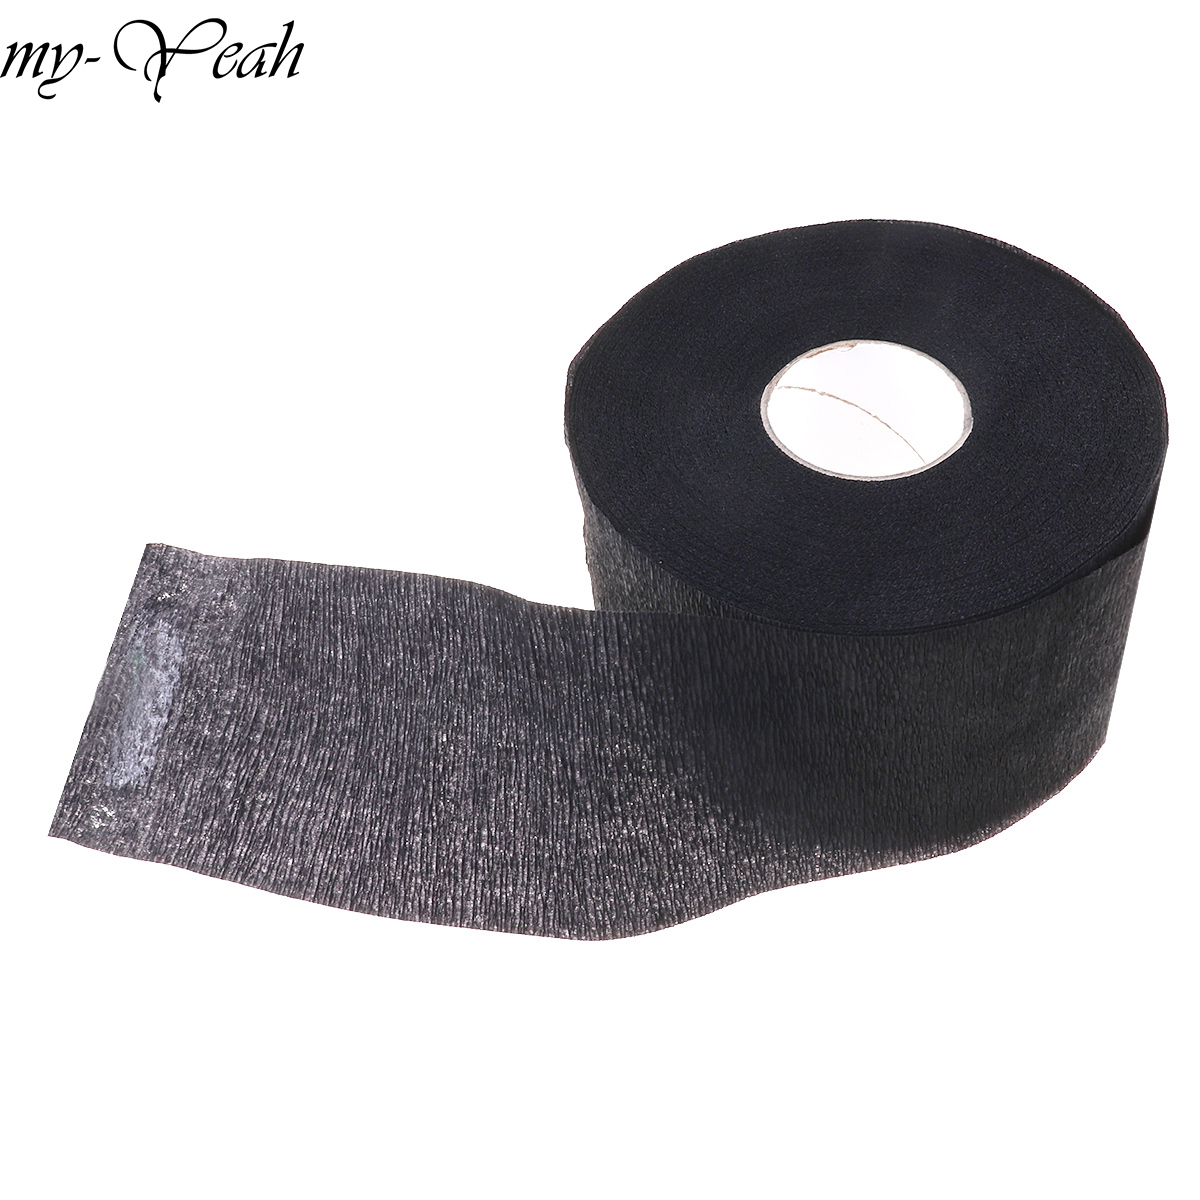 Neck Ruffle Roll Paper Disposable Muffler Paper Hair Cutting Accessory Collar Covering Hairdressing Tools Professional Salon Use